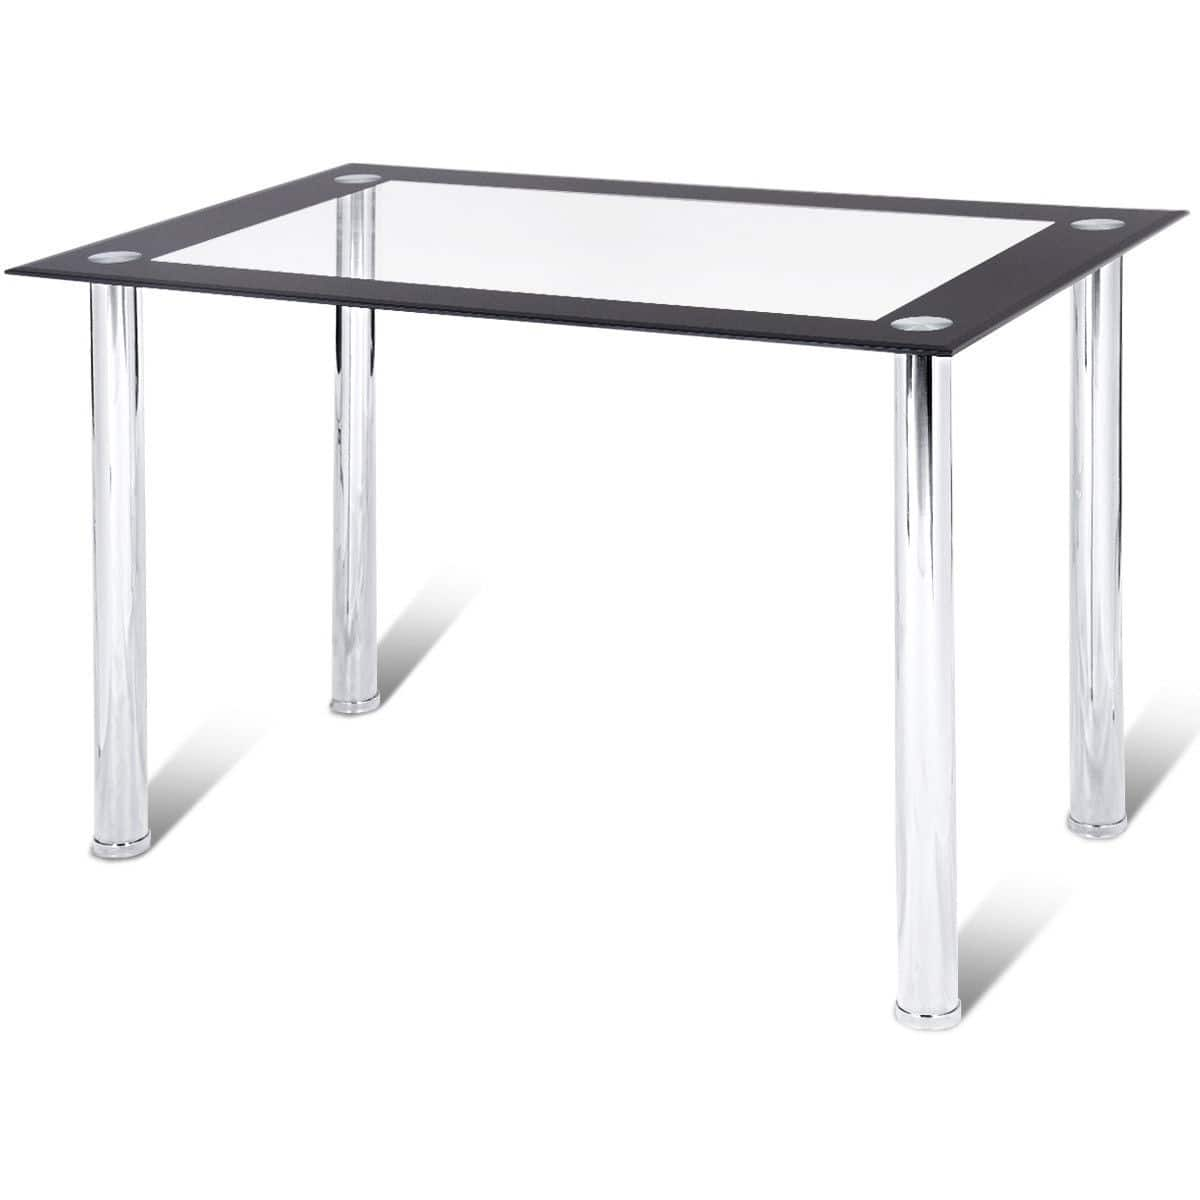 Modern Dining Kitchen Tempered Glass Table - $89.95 + Free Shipping